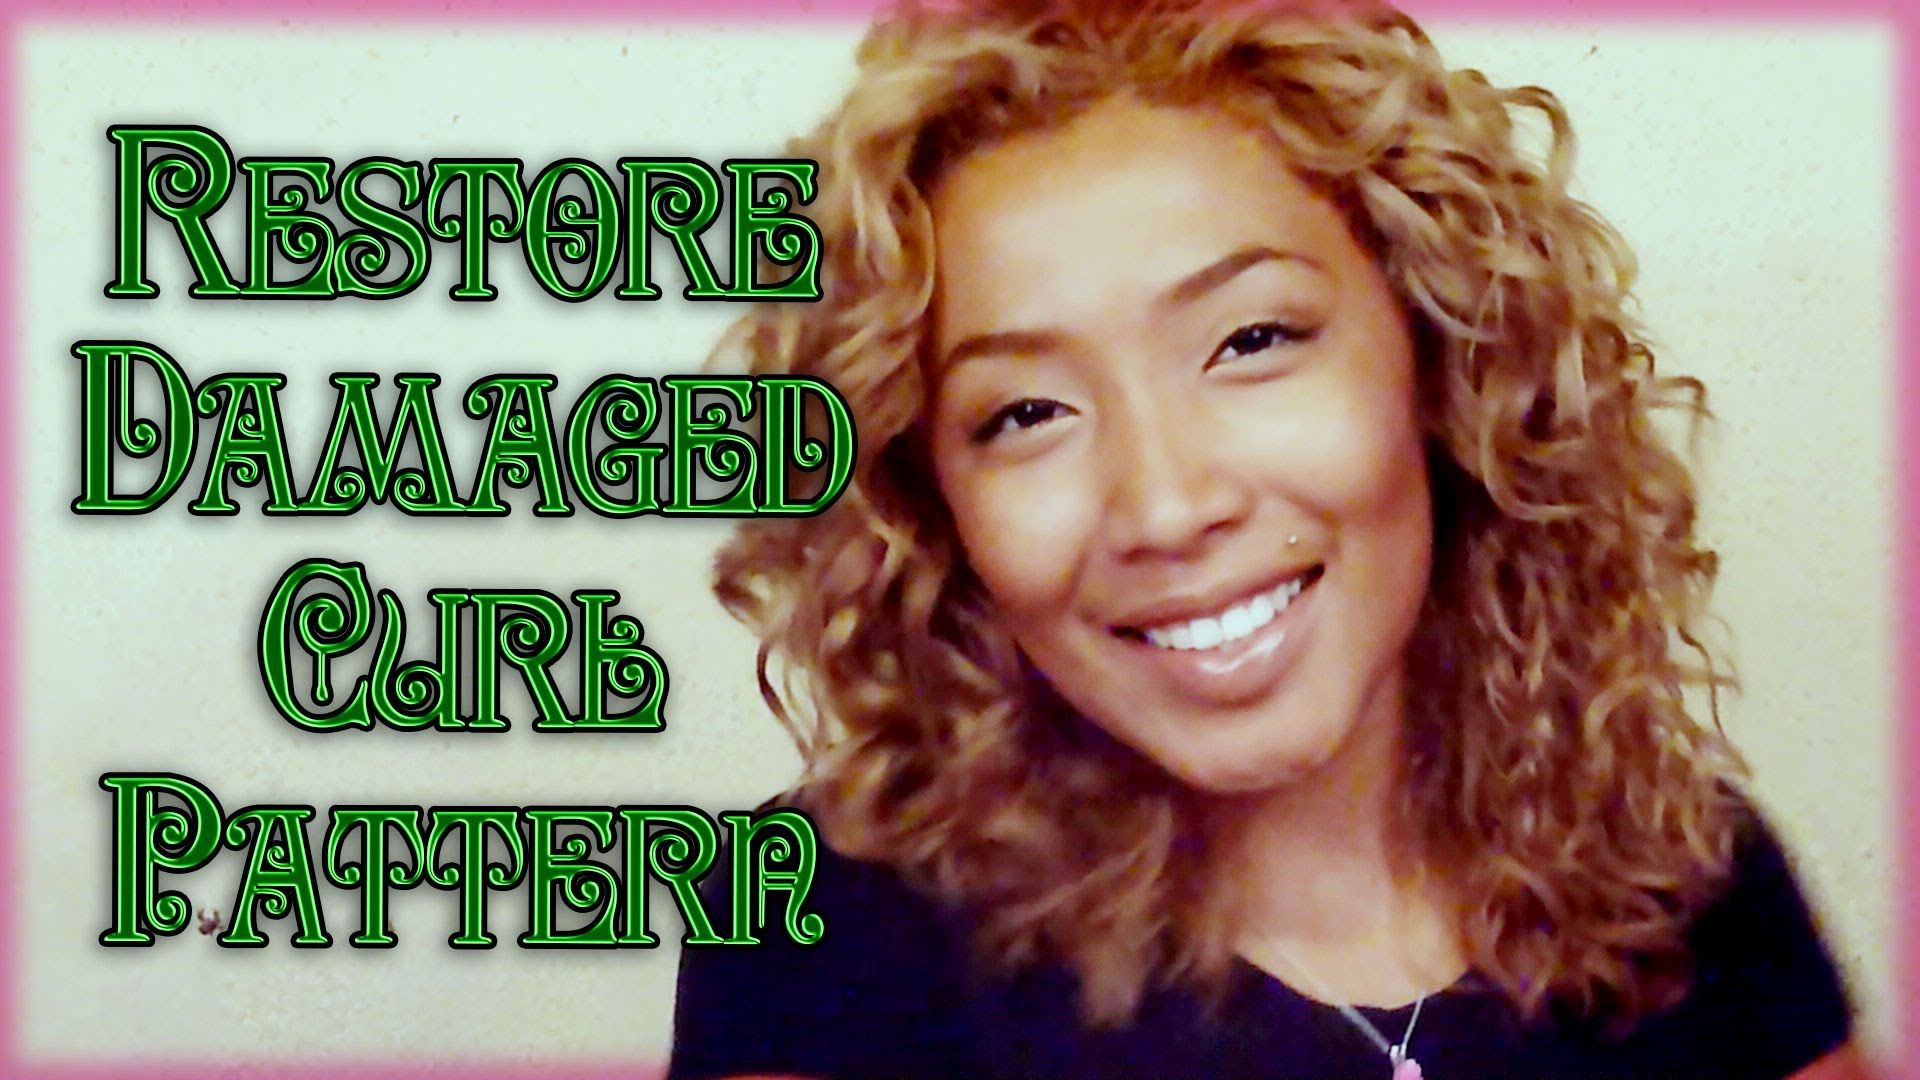 How To Get Natural Curl Pattern Back After Bleaching And Heat Damage Restore Curl Pattern Mix Natural Curly Hair Care Natural Curls Short Natural Hair Styles